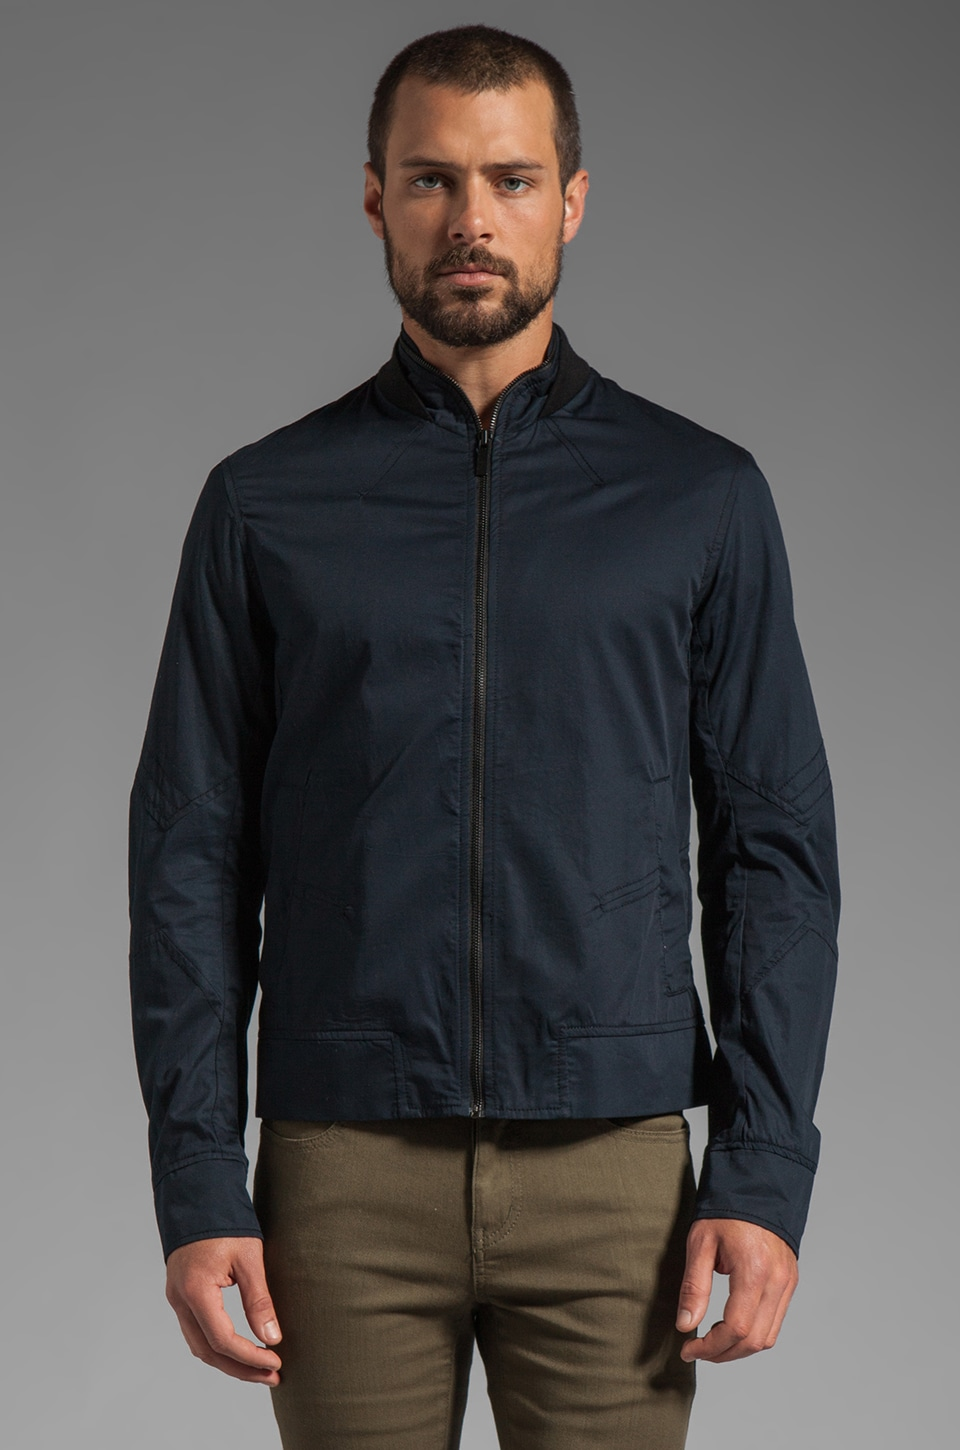 Kai-aakmann Jacket in Navy